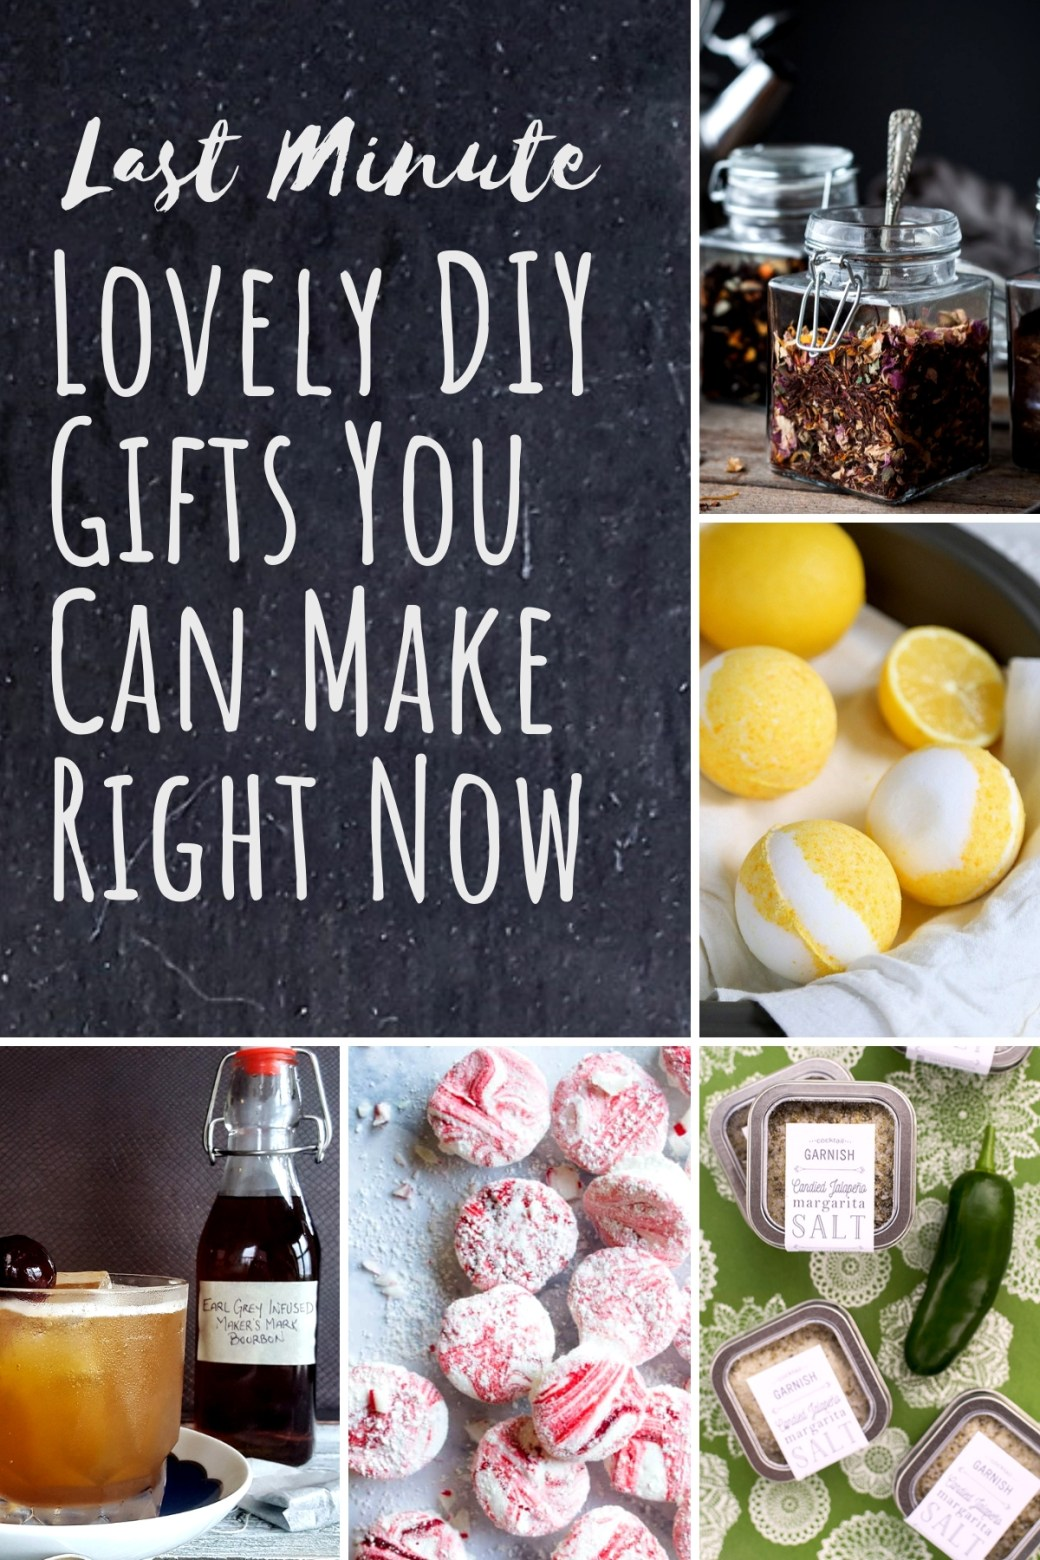 With the right supplies and just a little bit of time, you can make lovely DIY gifts for everyone on your list! #DIY #holidays #gifts